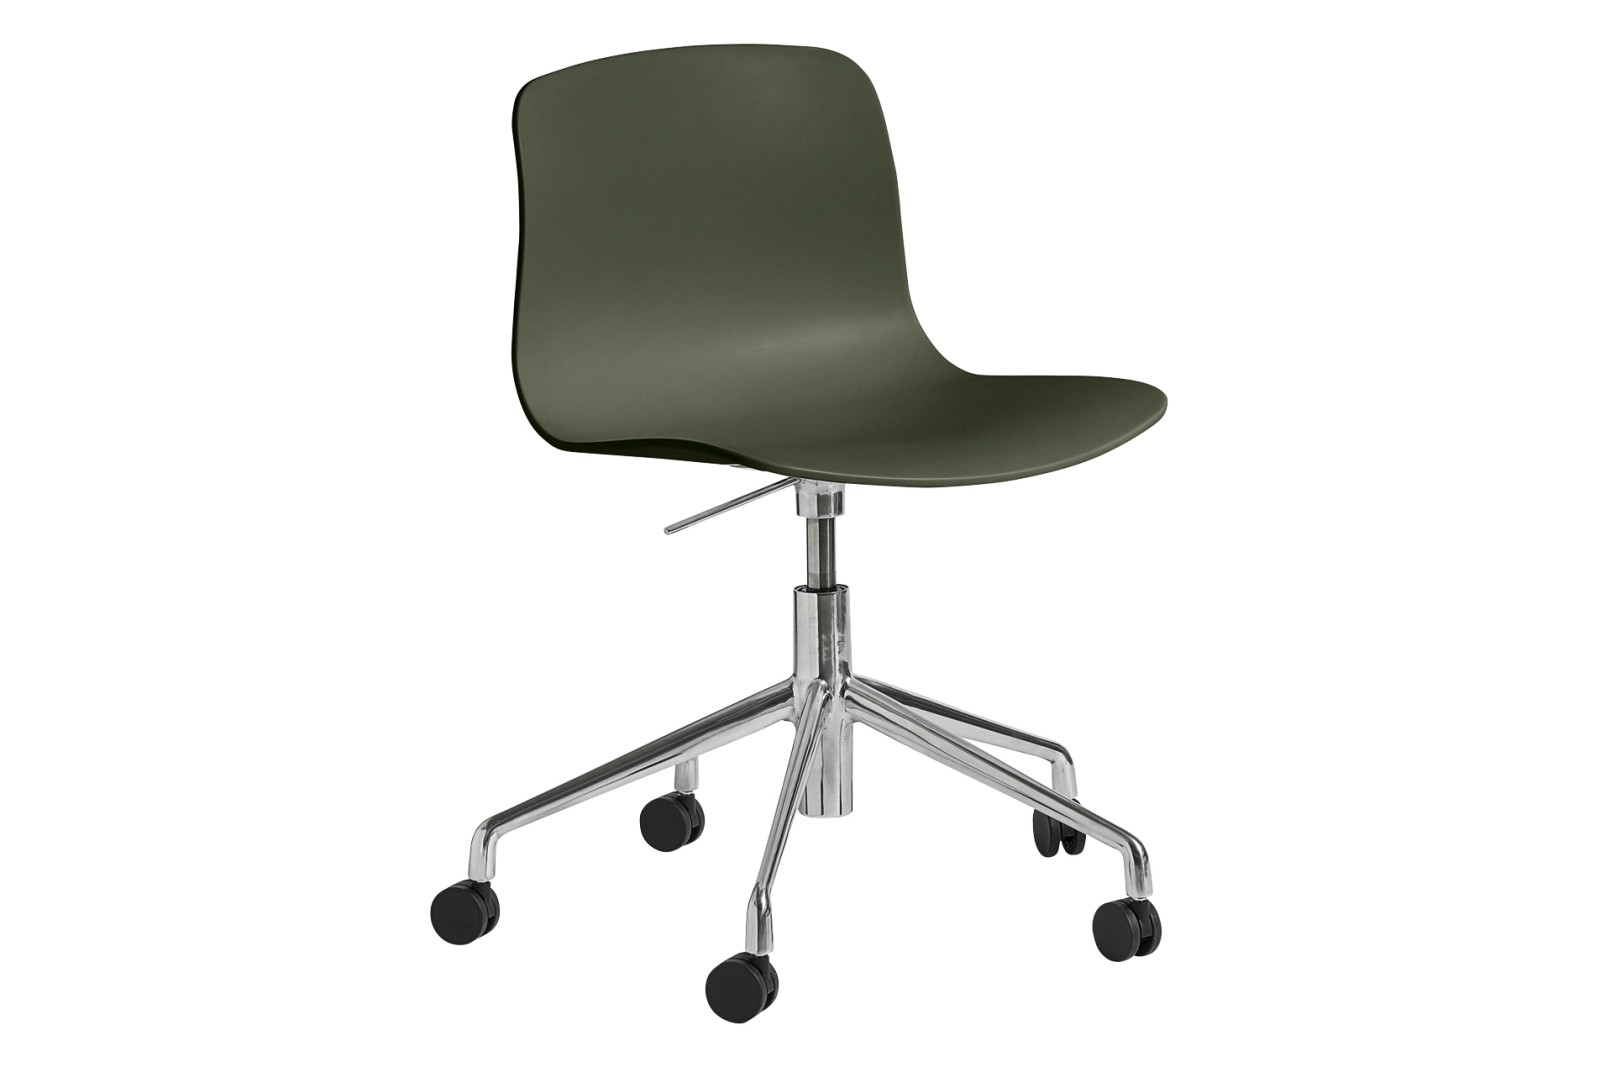 AAC 50 Meeting Chair Plastic Green, Metal Polished Aluminium